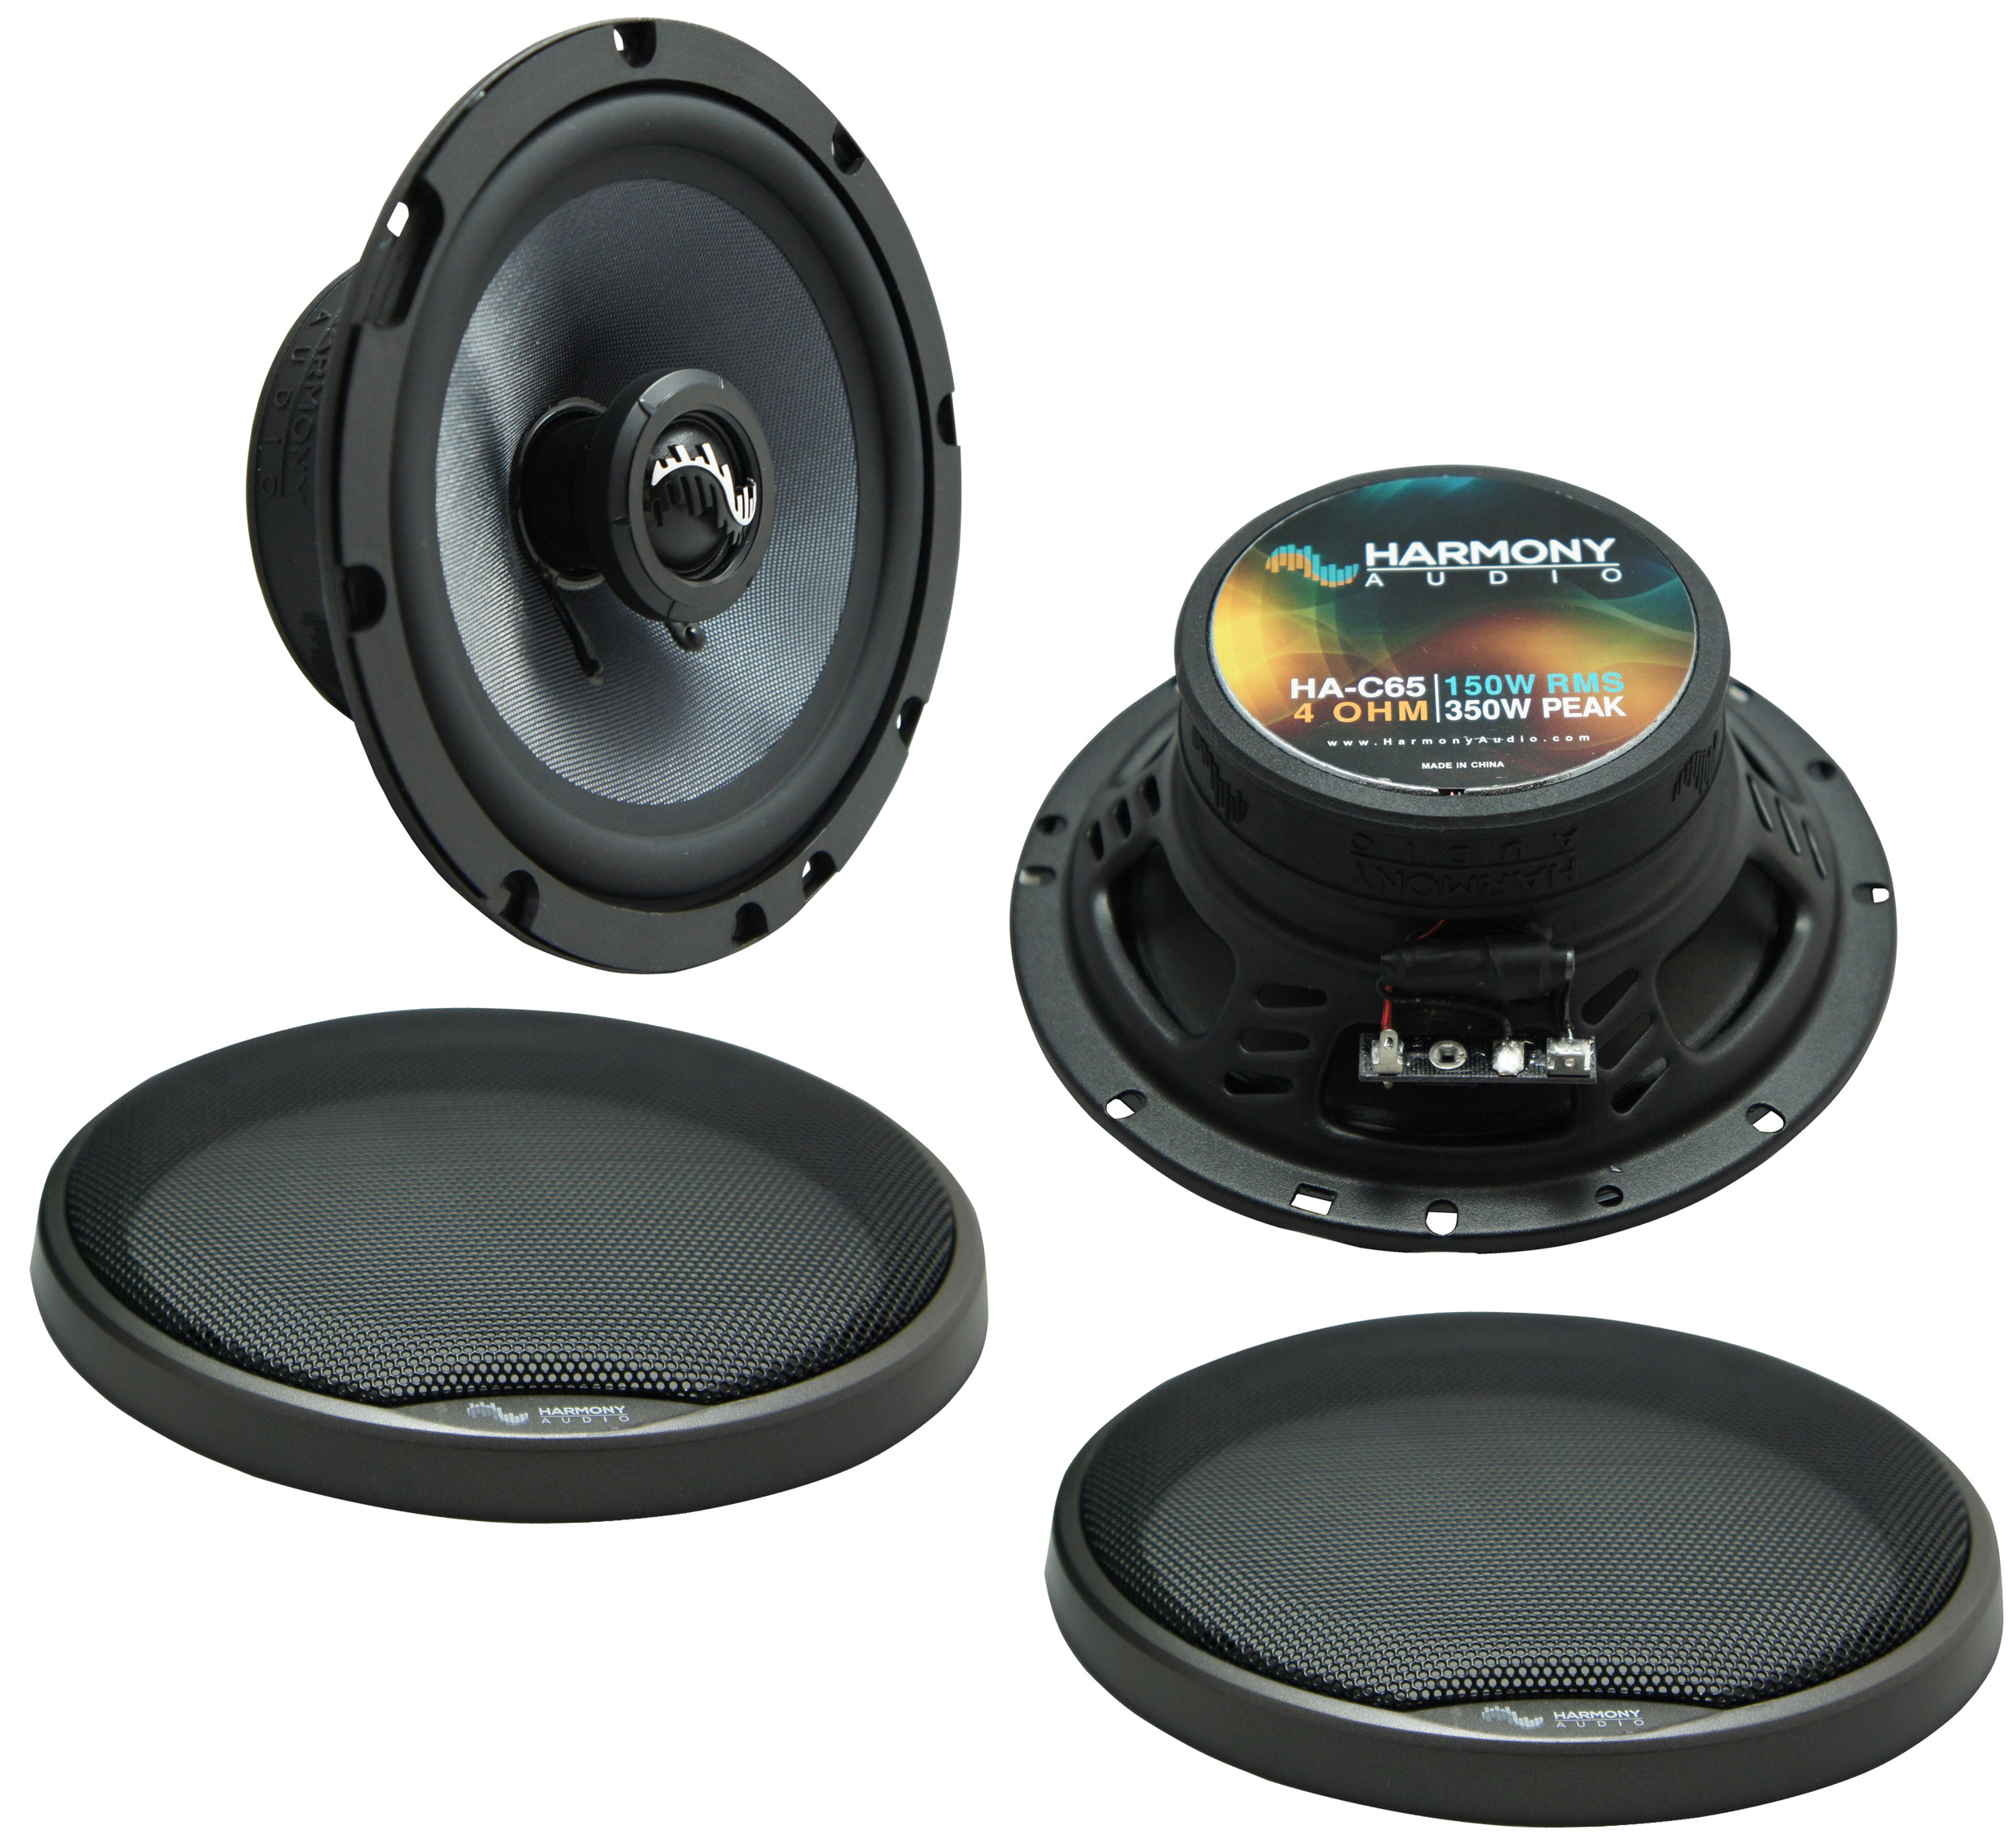 Fits Infiniti G35 2003-2008 Front Door Replacement Harmony HA-C65 Premium Speakers New